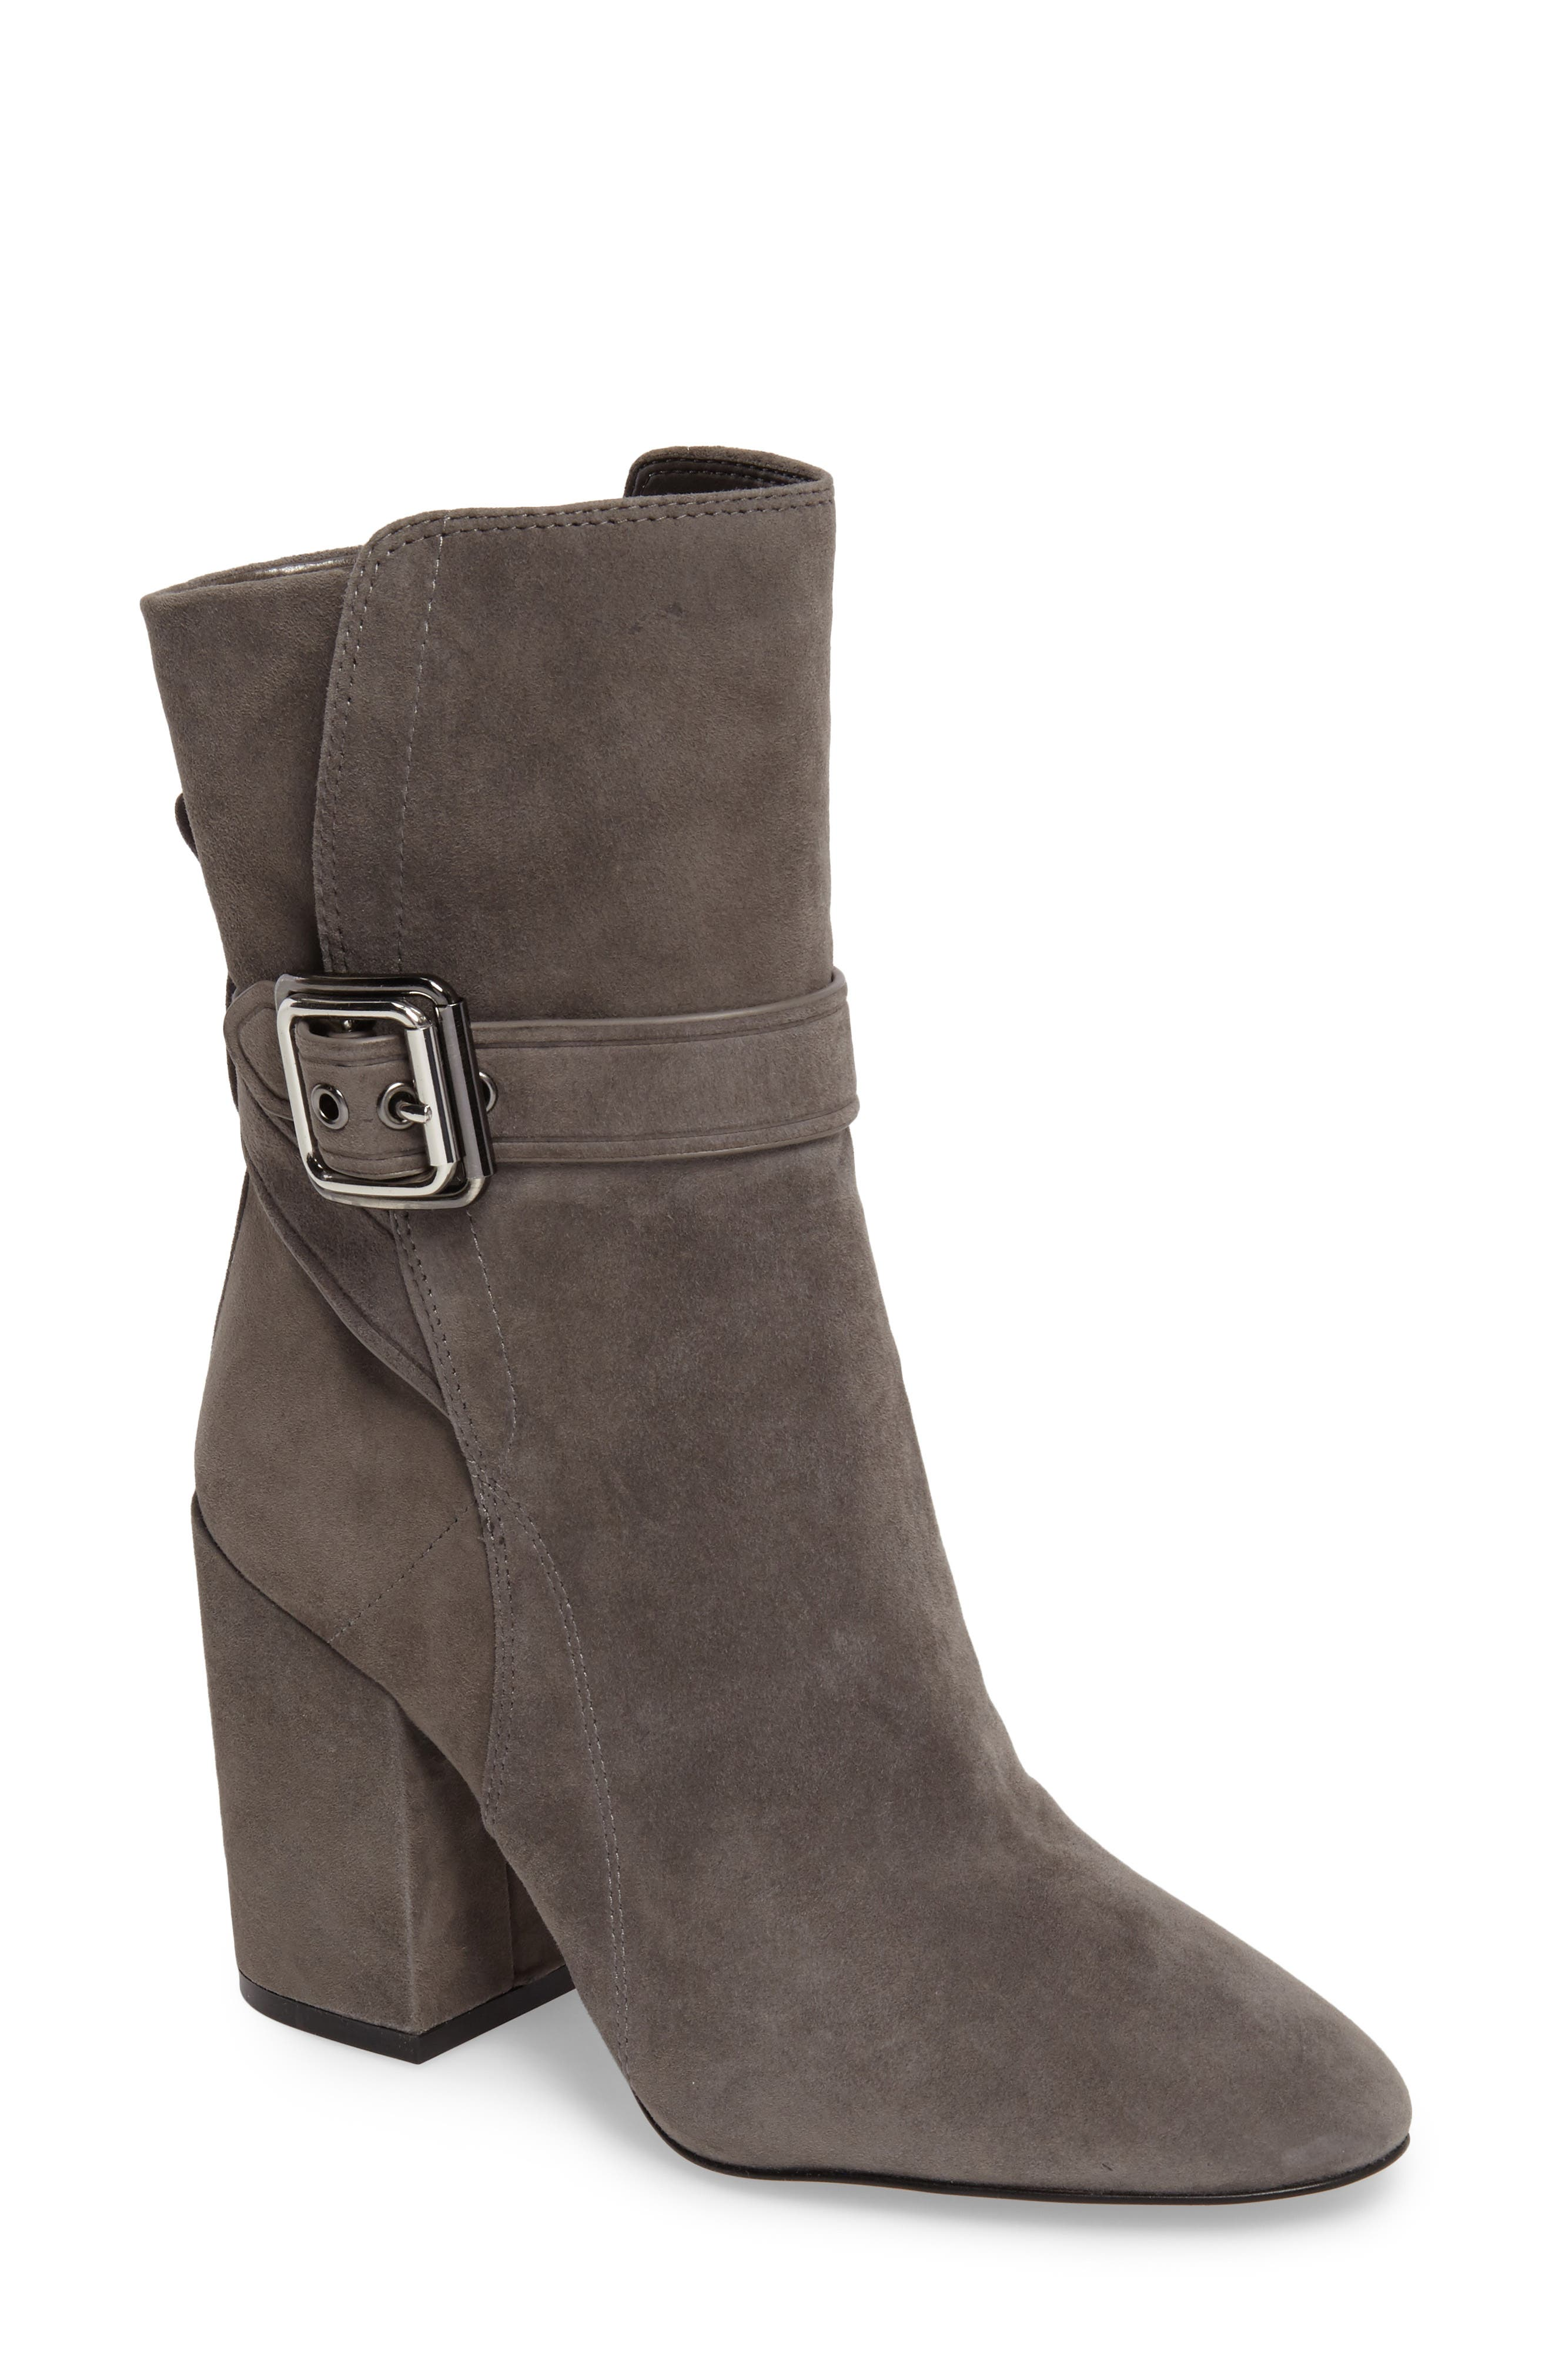 Damefaris Buckle Strap Bootie,                             Main thumbnail 1, color,                             Greystone Suede